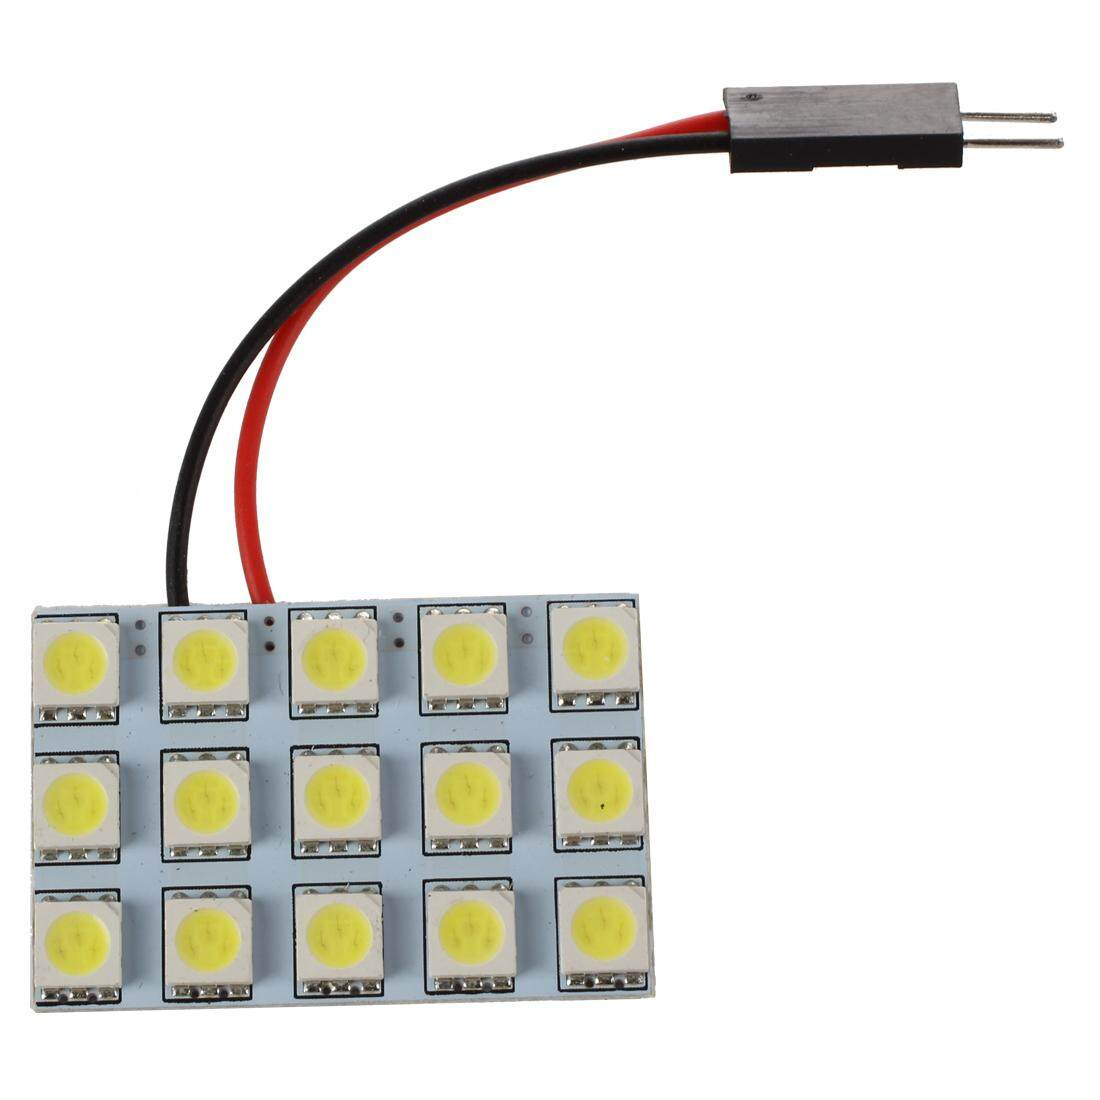 Automotive Accessories Buy At Best Price In Wiring Fog Lamp Exora 2x Car Interior Light Panel 15 Smd 5050 Led T10 Ba9s Dome Festoon Bulb Adapter